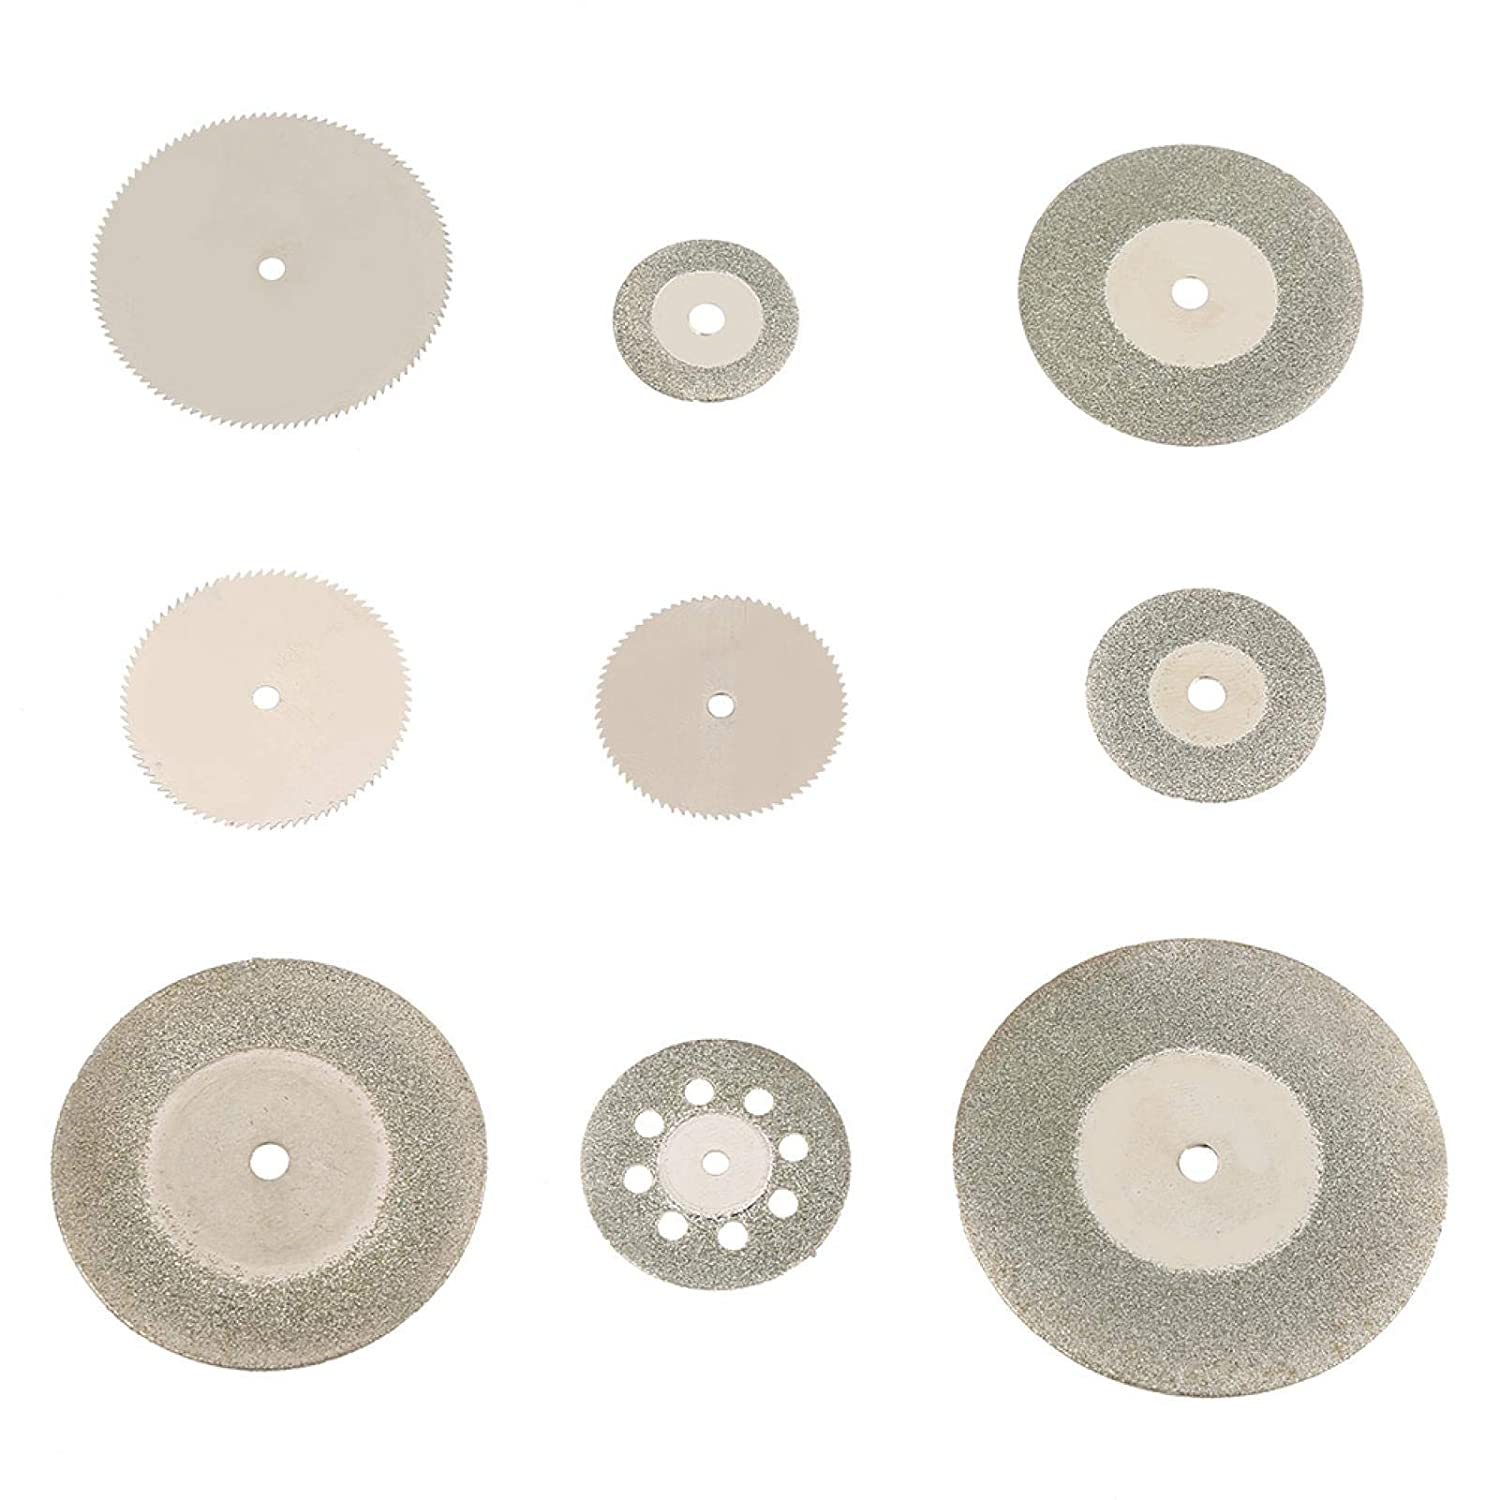 37Pcs Diamond Daily bargain sale Stainless Steel Same day shipping Cutting and Disc Blades Mandre Saw